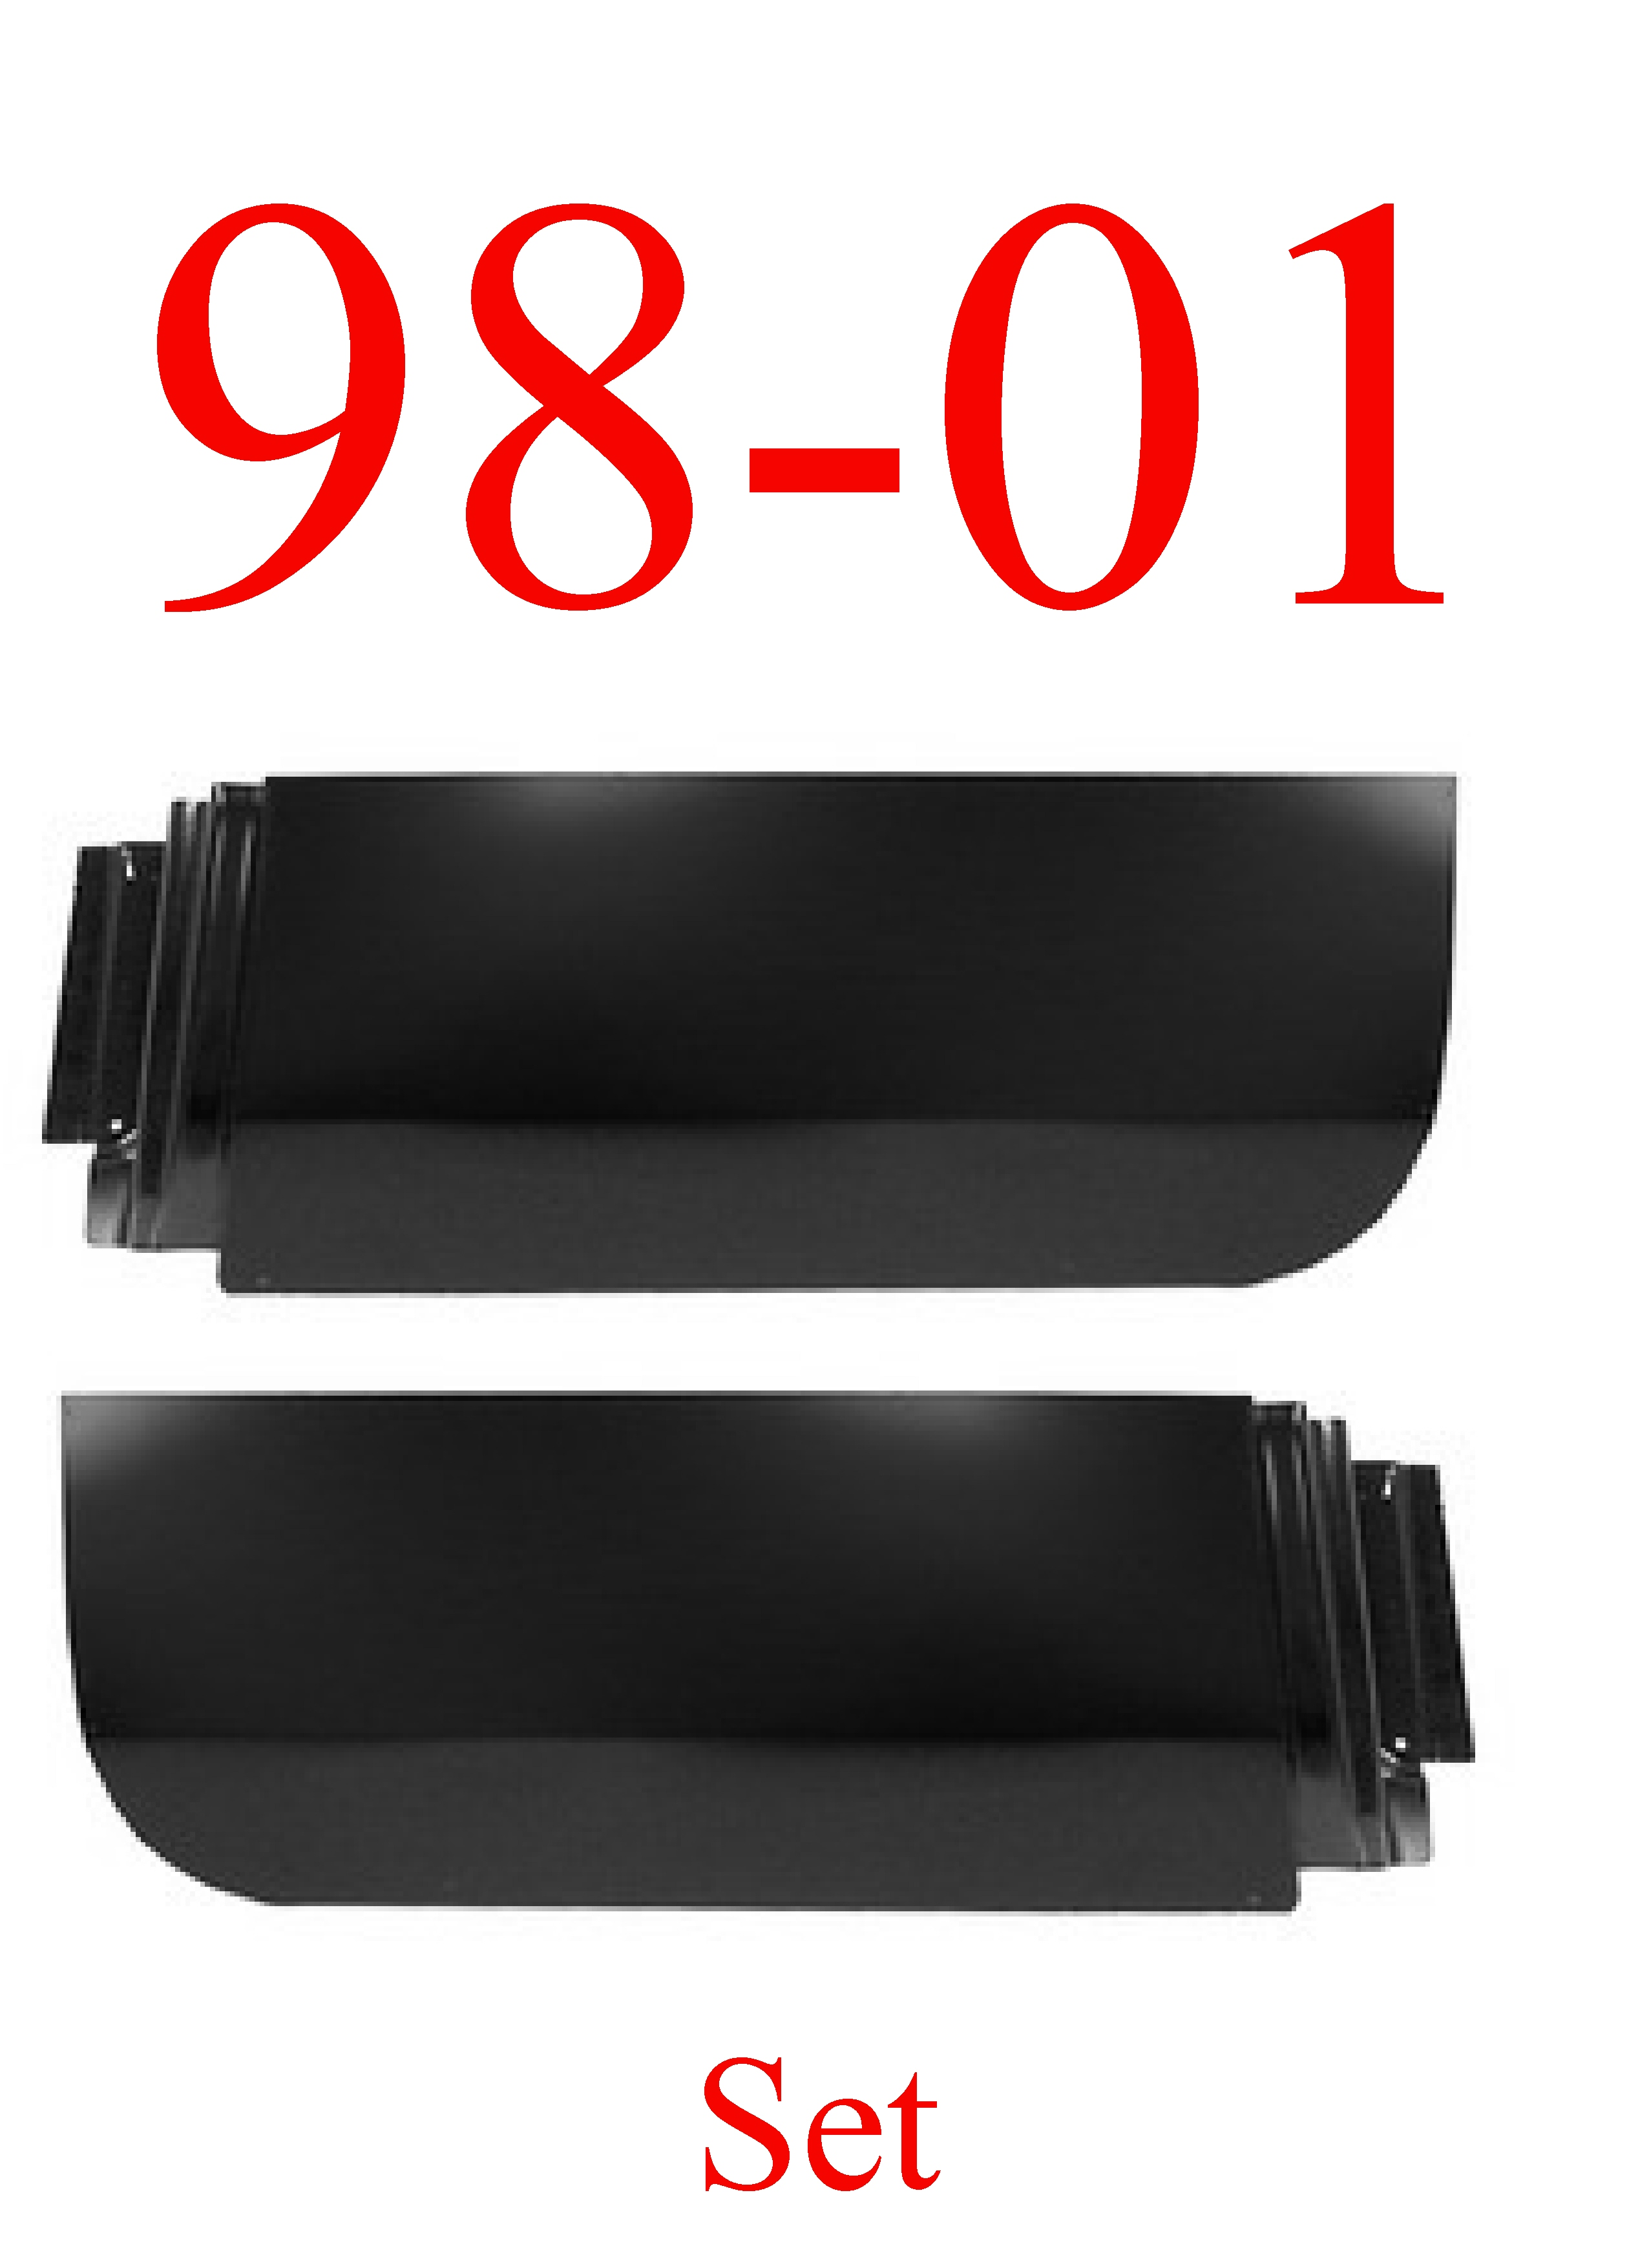 98-01 Dodge Rear Quad Cab Door Skin Set